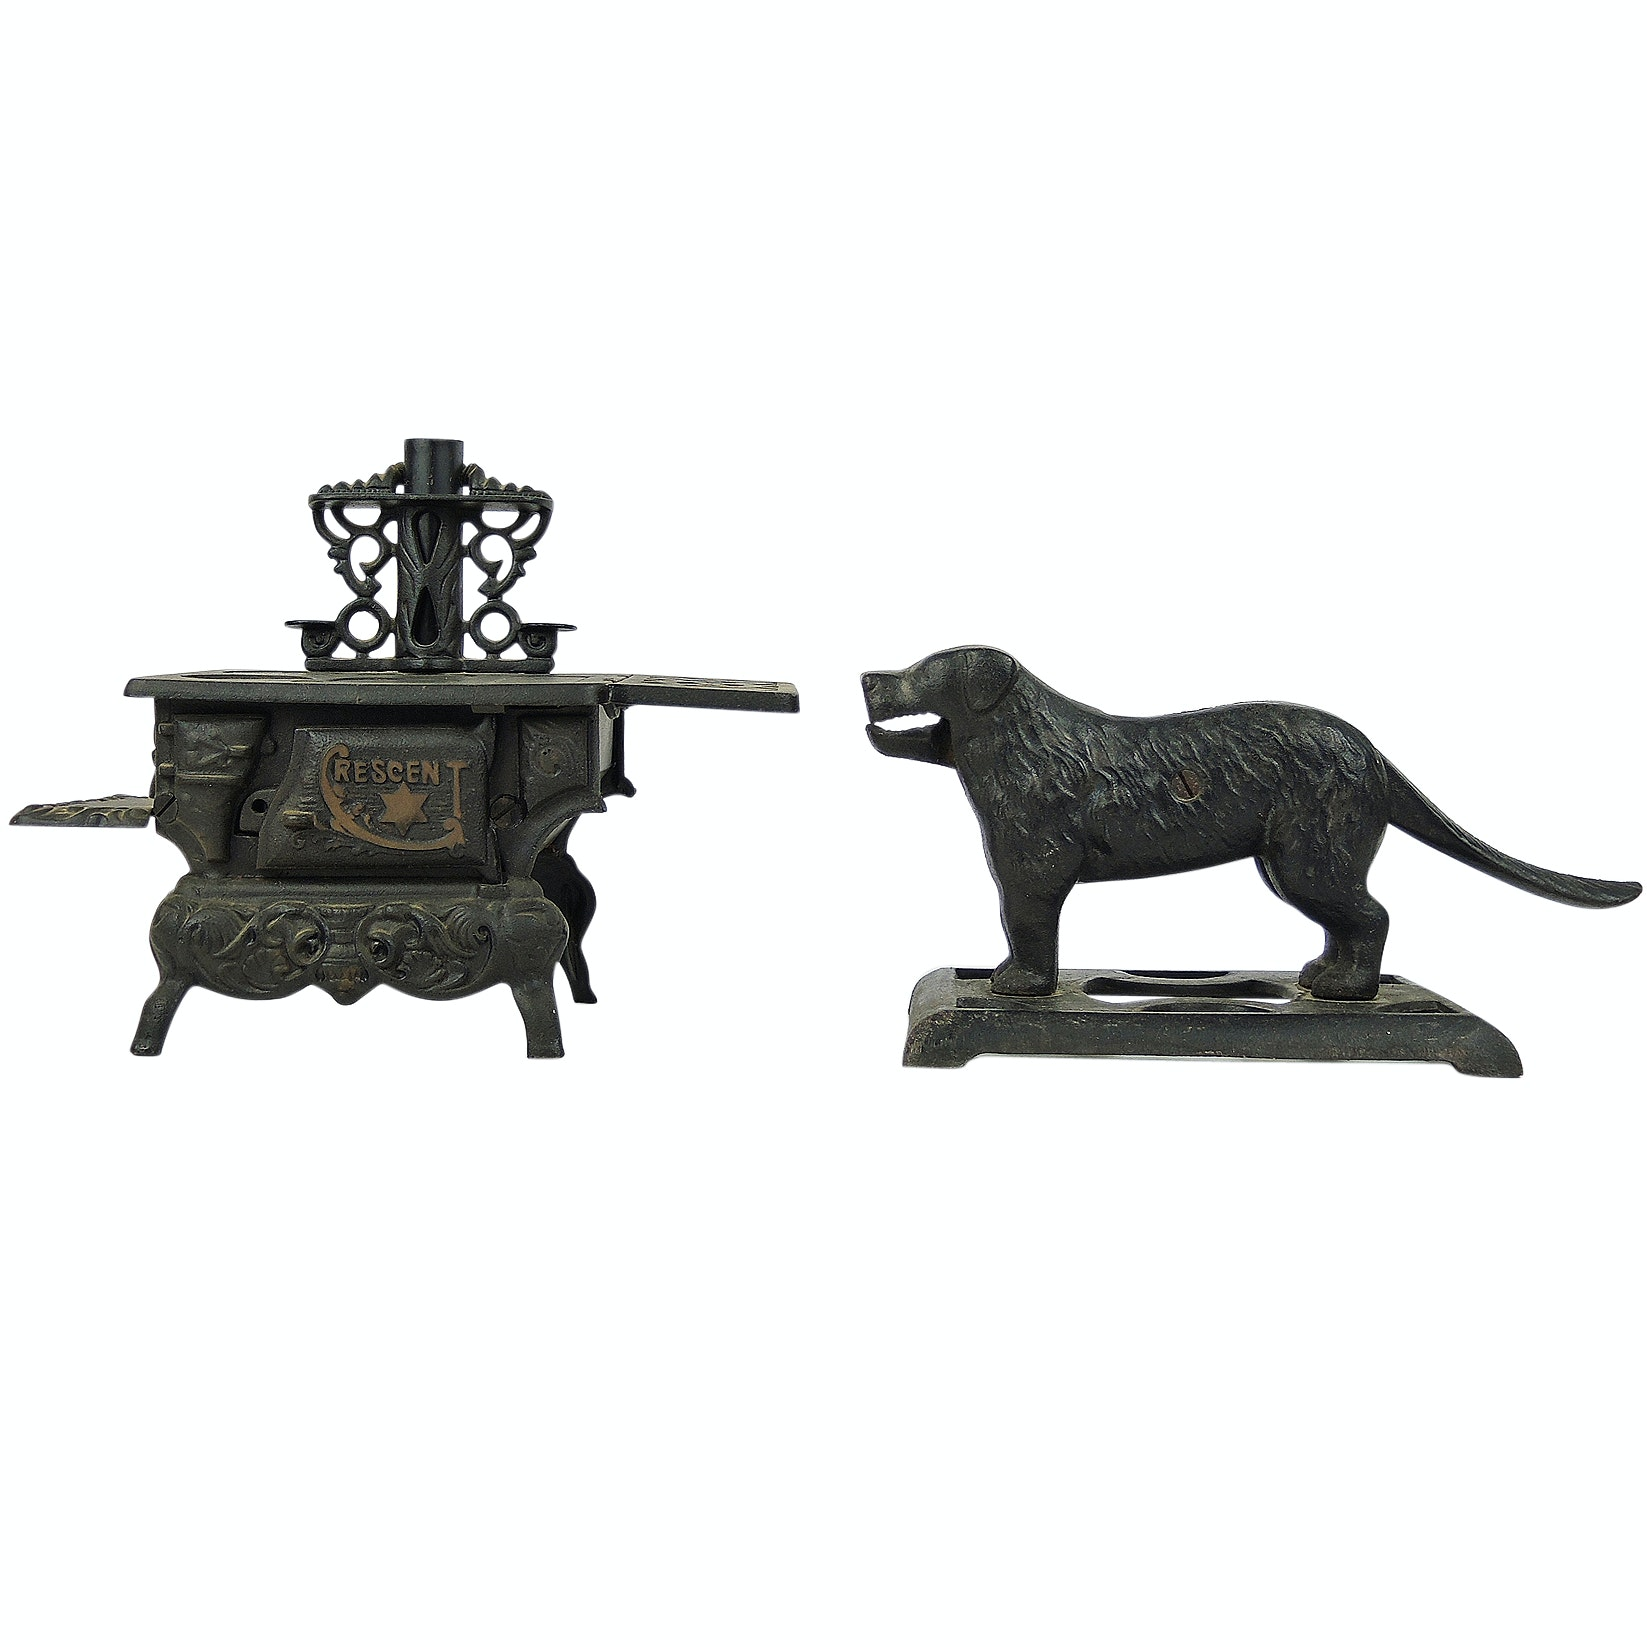 Cast Iron Dog Nut Cracker and Crescent Salesman Sample Stove